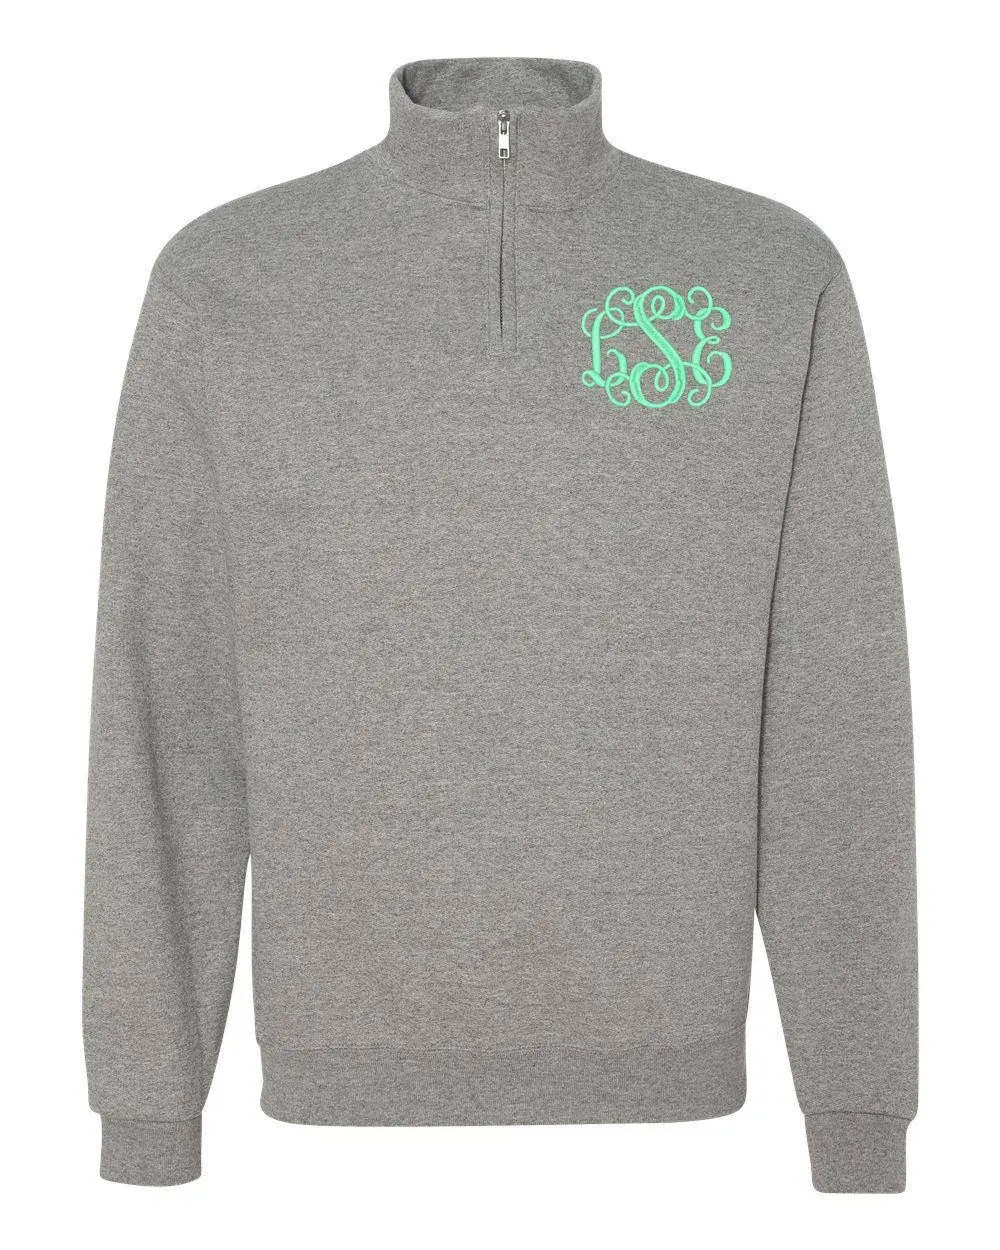 FREE Shipping  Monogram Pullover  Personalized Quarter Zip image 3